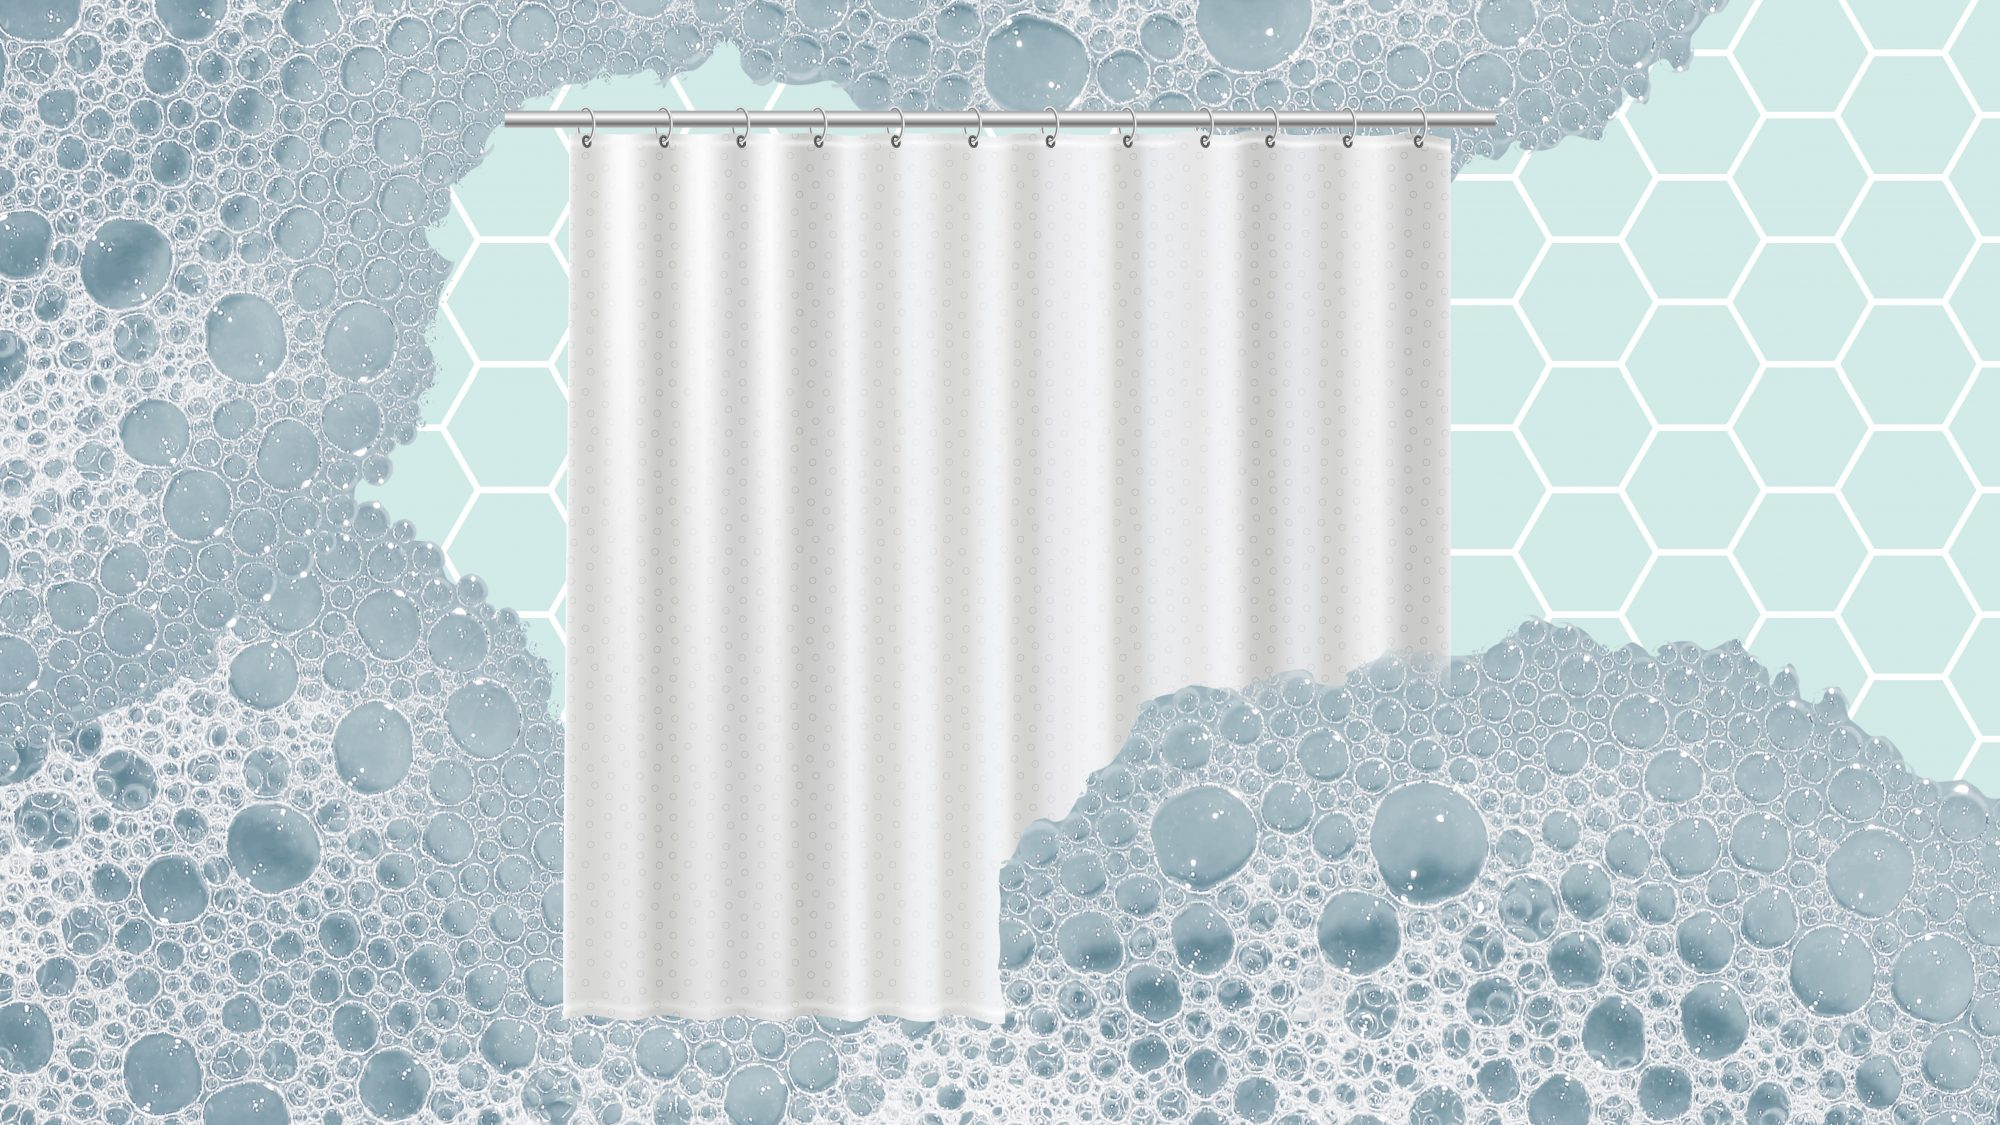 How to Clean a Shower Curtain Liner by Hand